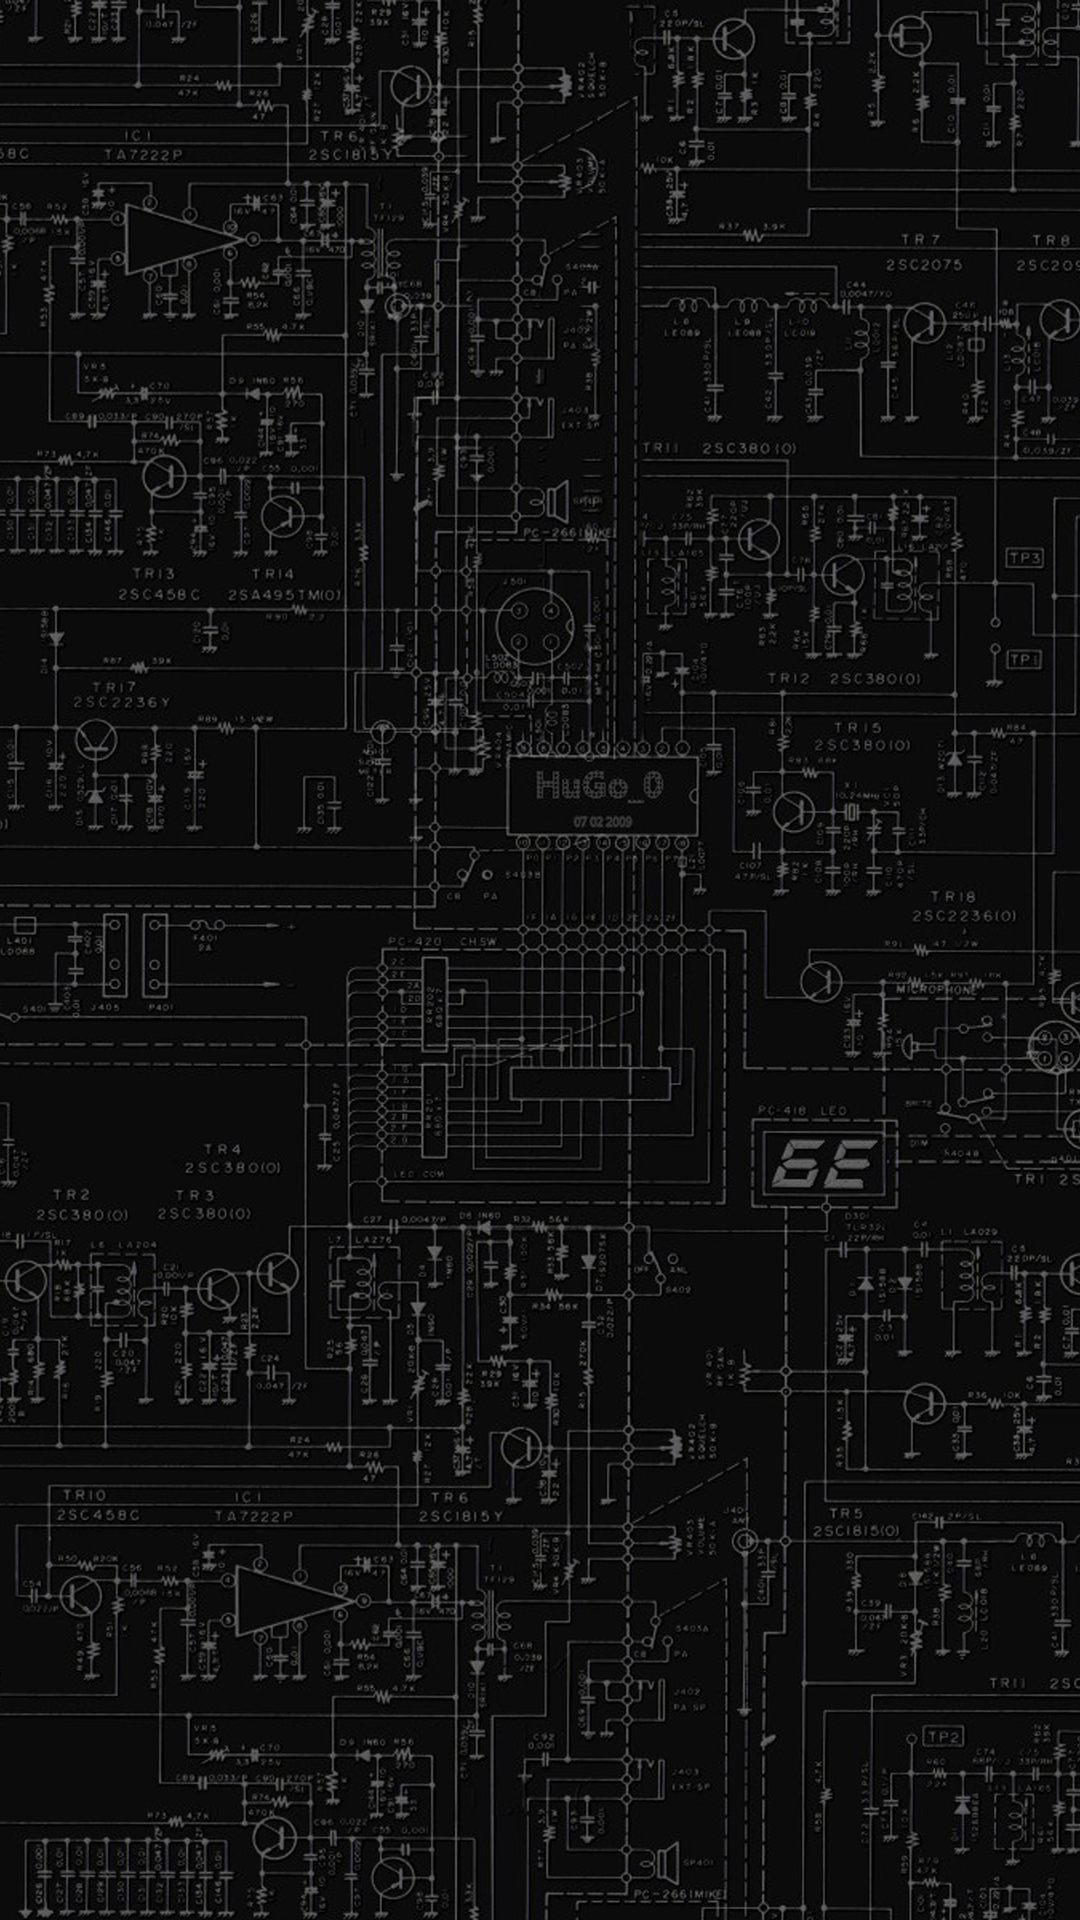 Hd wallpaper iphone 5 - Dark Circuit Board Iphone 6 6 Plus And Iphone 5 4 Wallpapers